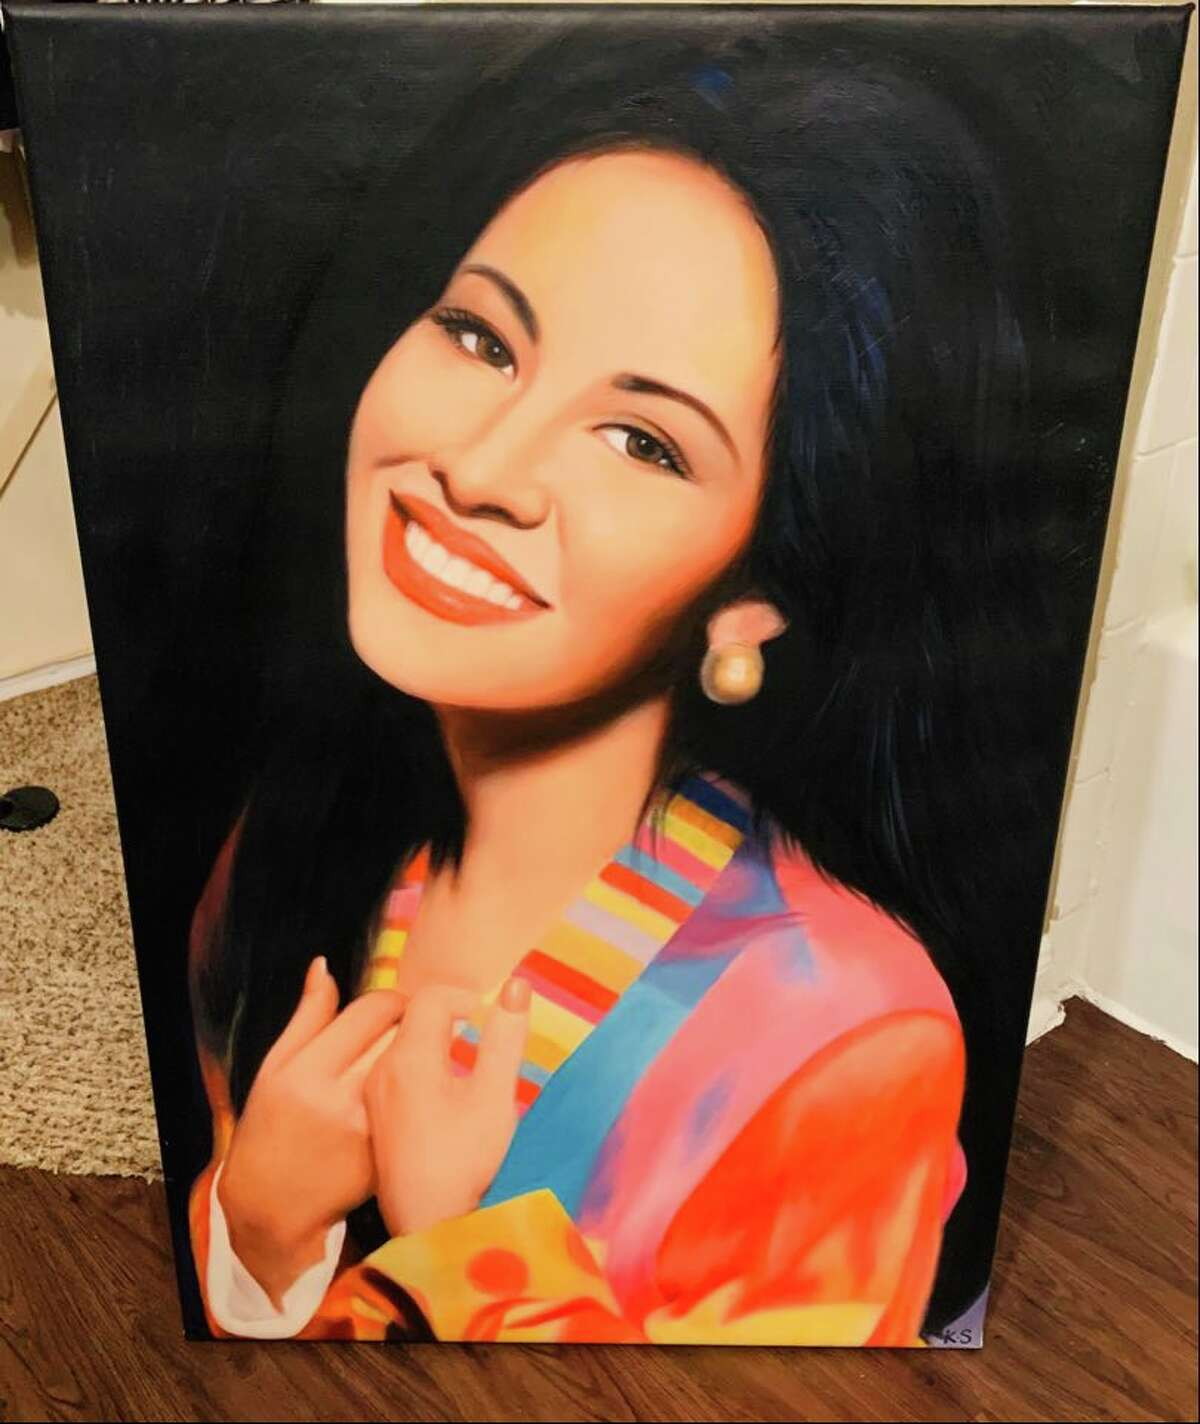 A Selena painting belonging to LJ Reyna in Laredo.